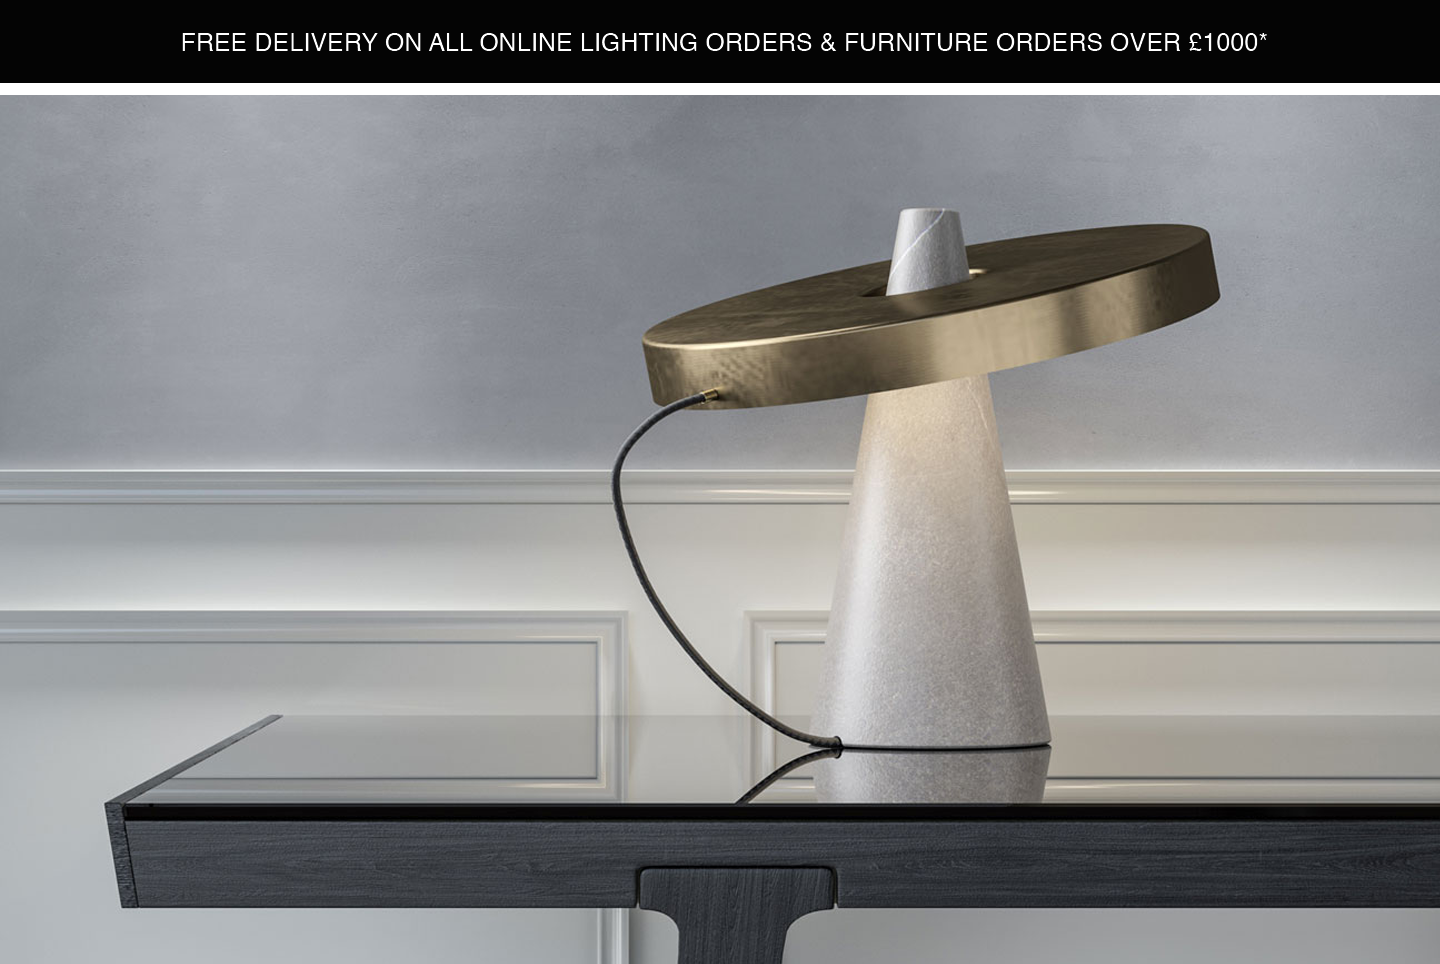 ED039 TABLE LAMP BY EDIZIONI DESIGN